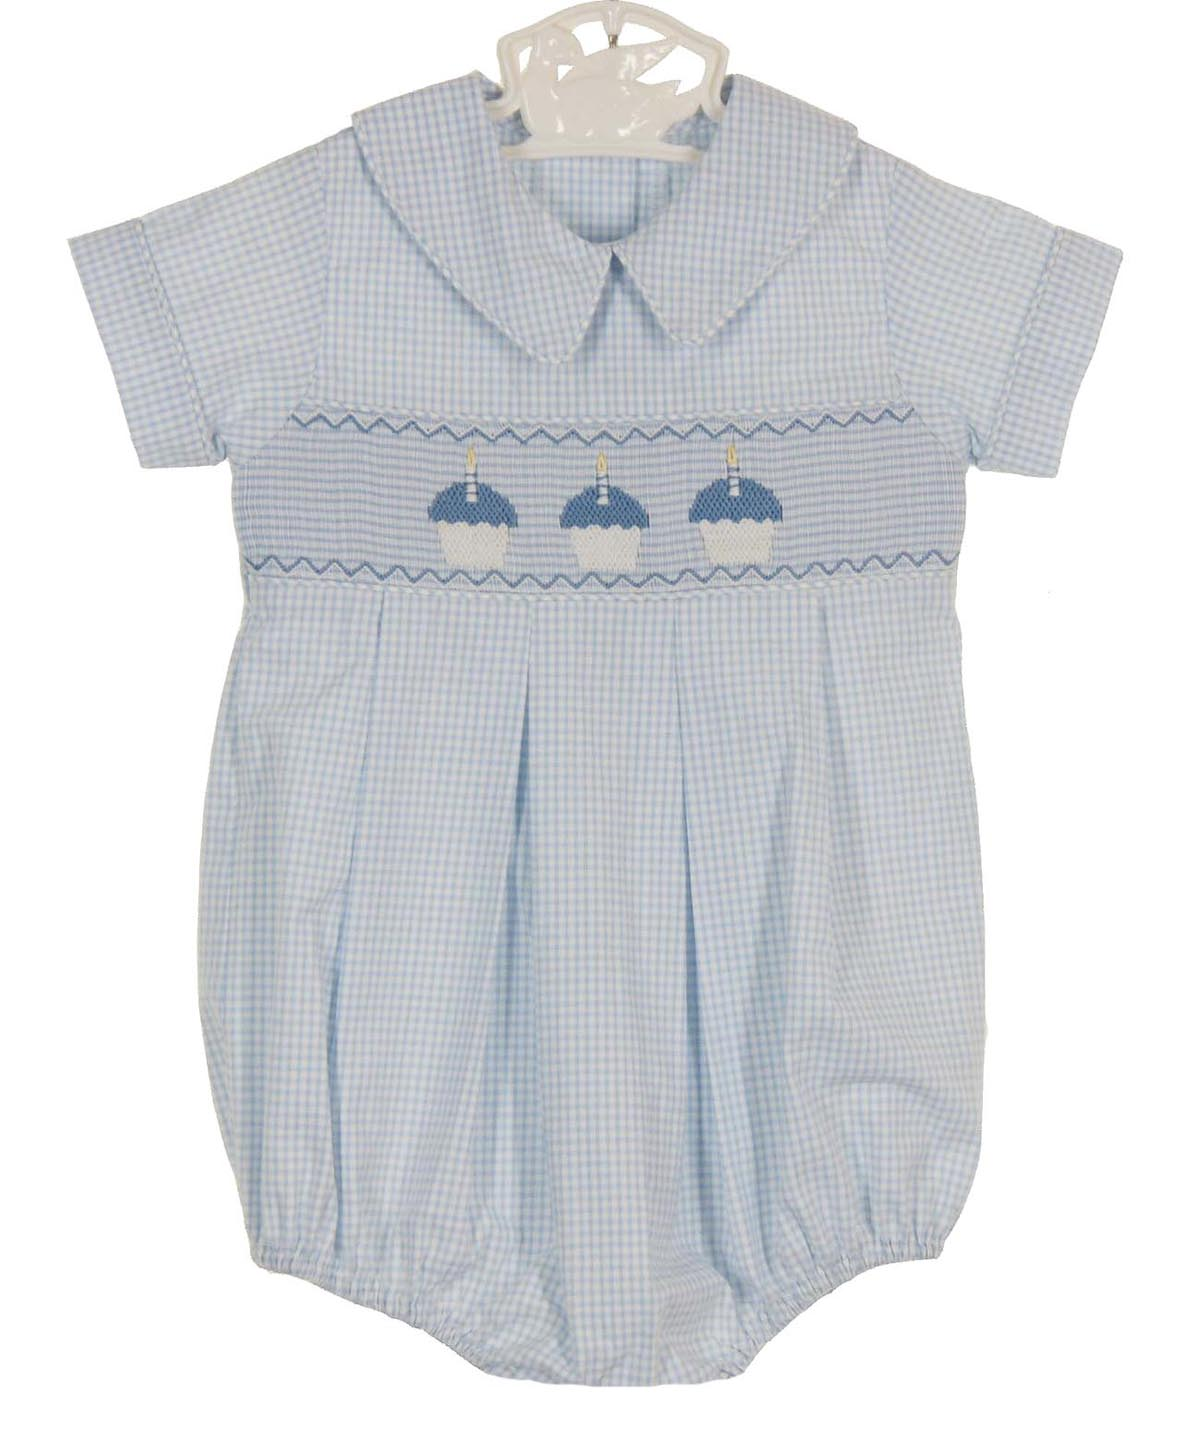 Precious Kids blue checked smocked romper with embroidered ...